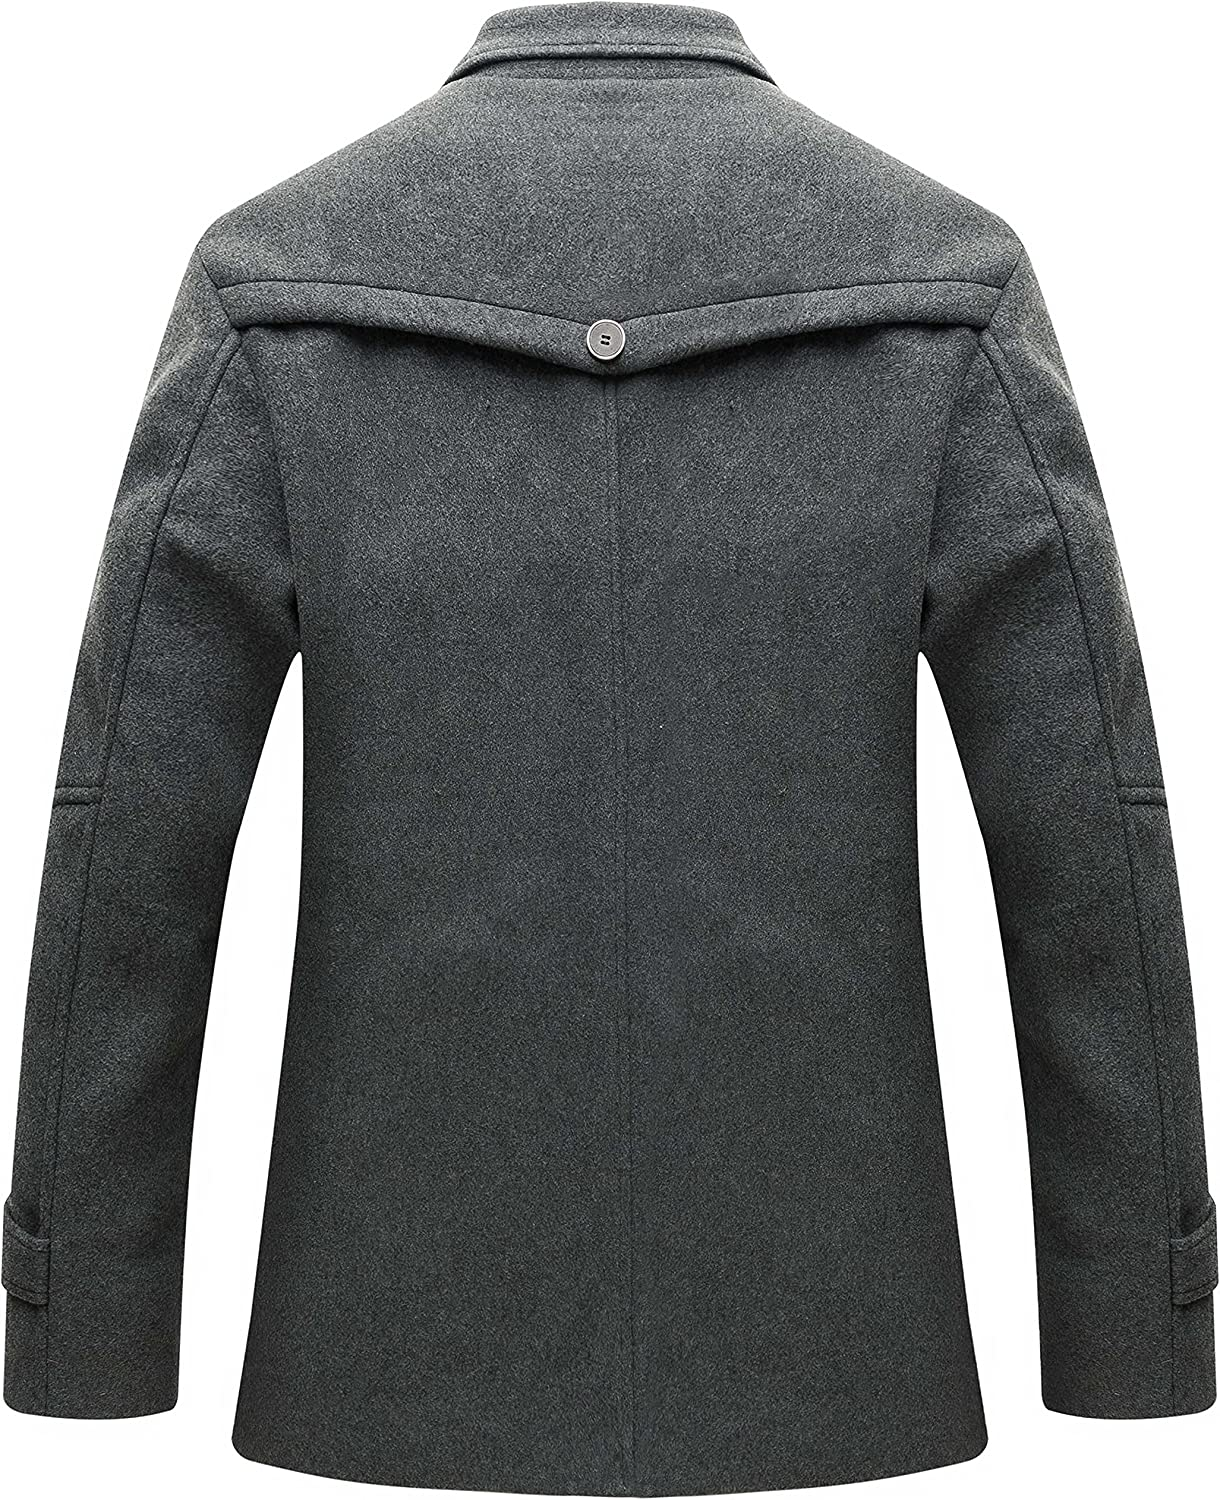 Nidicus Men Trench Coat Classic Military Style Wool Single Breasted Pea Coat